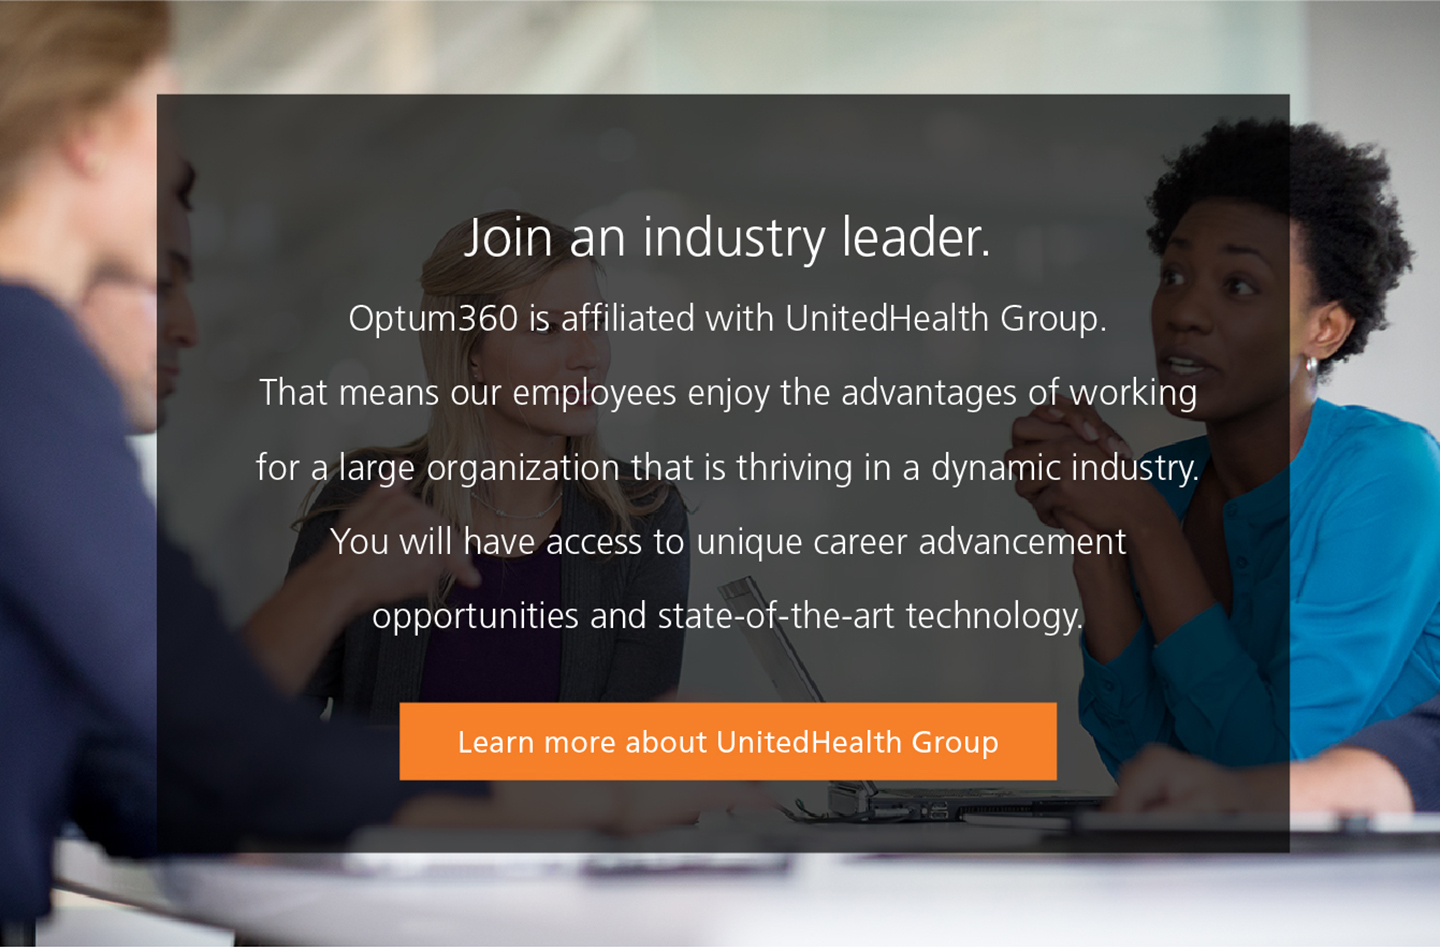 careers optum what kind of opportunity are you seeking